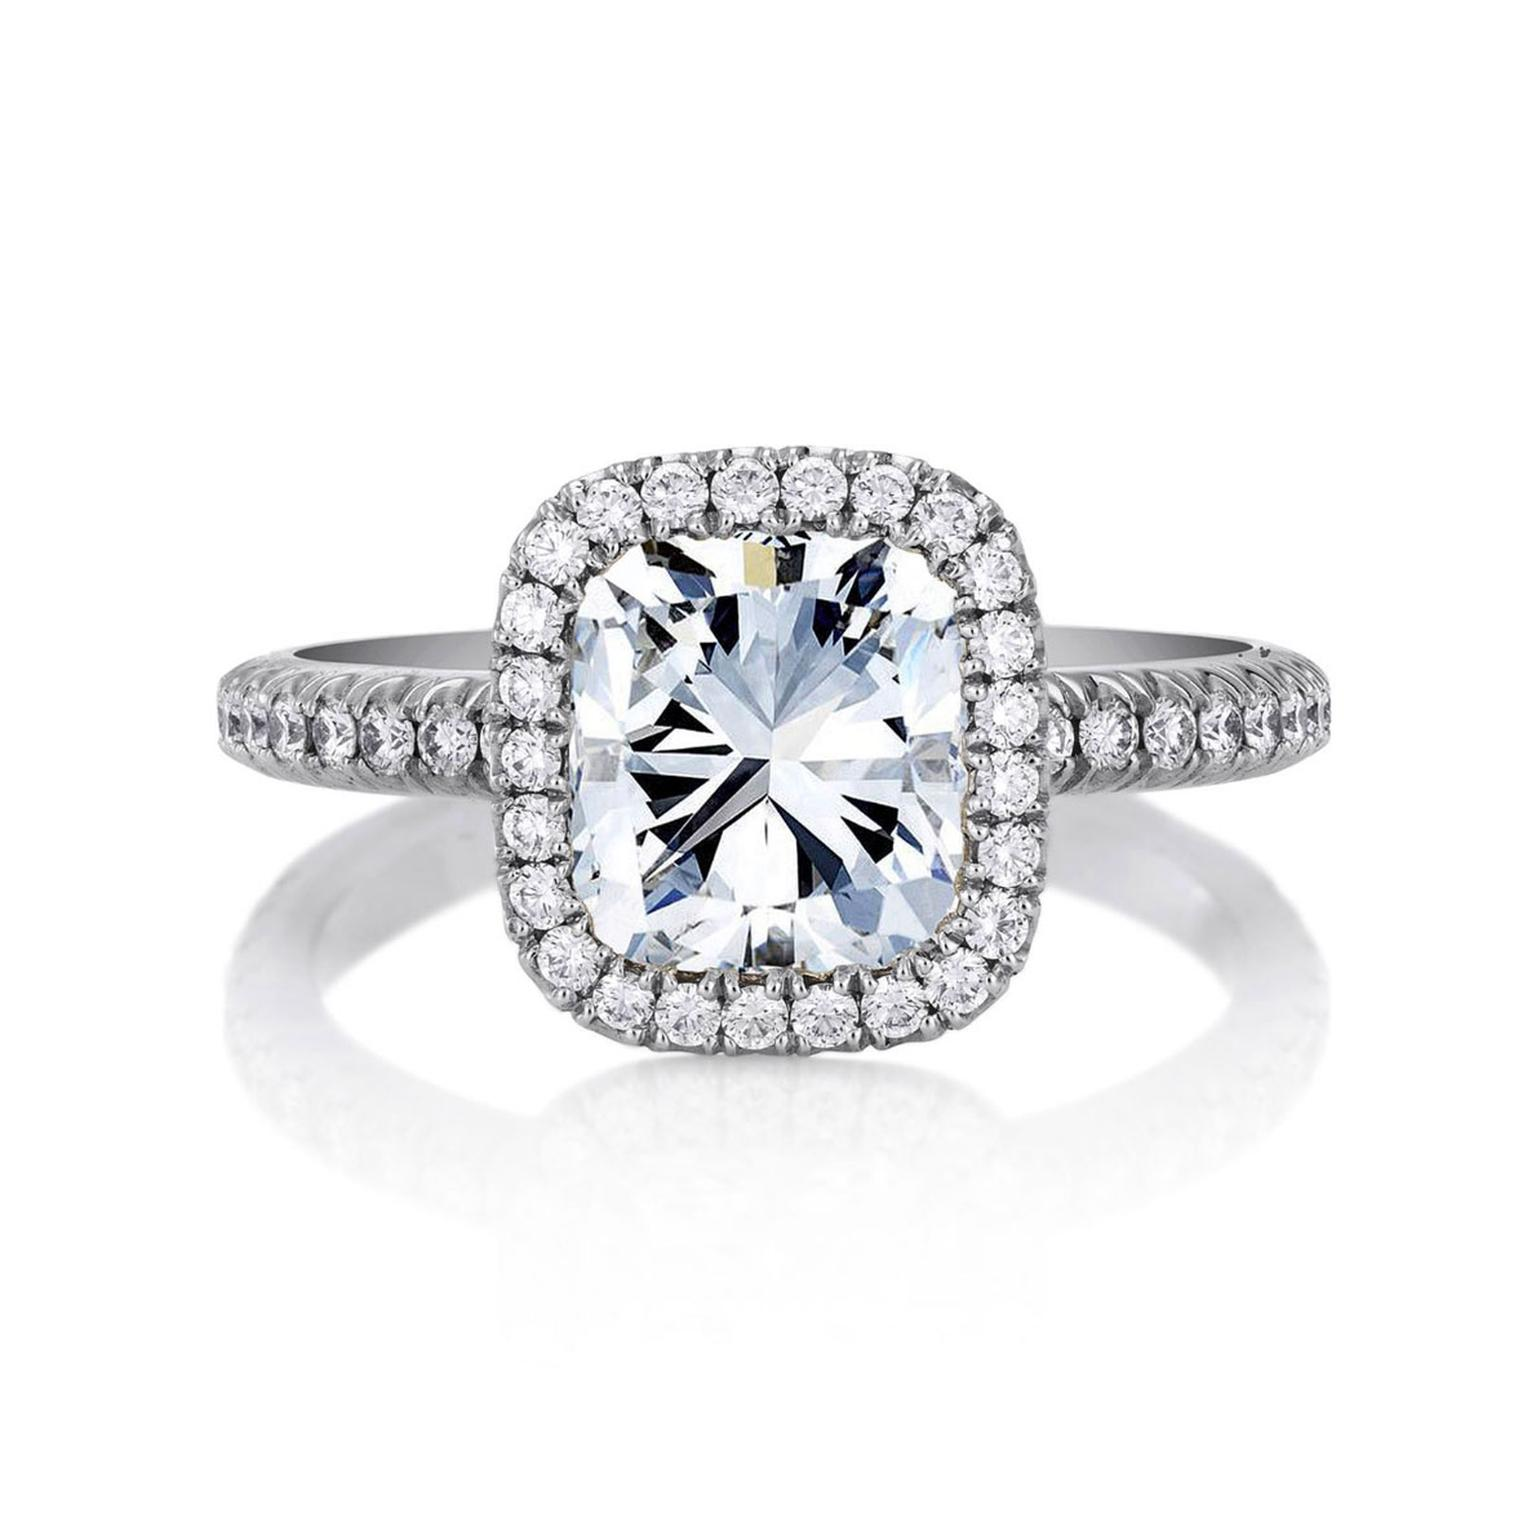 De Beers Aura cushion-cut diamond engagement ring